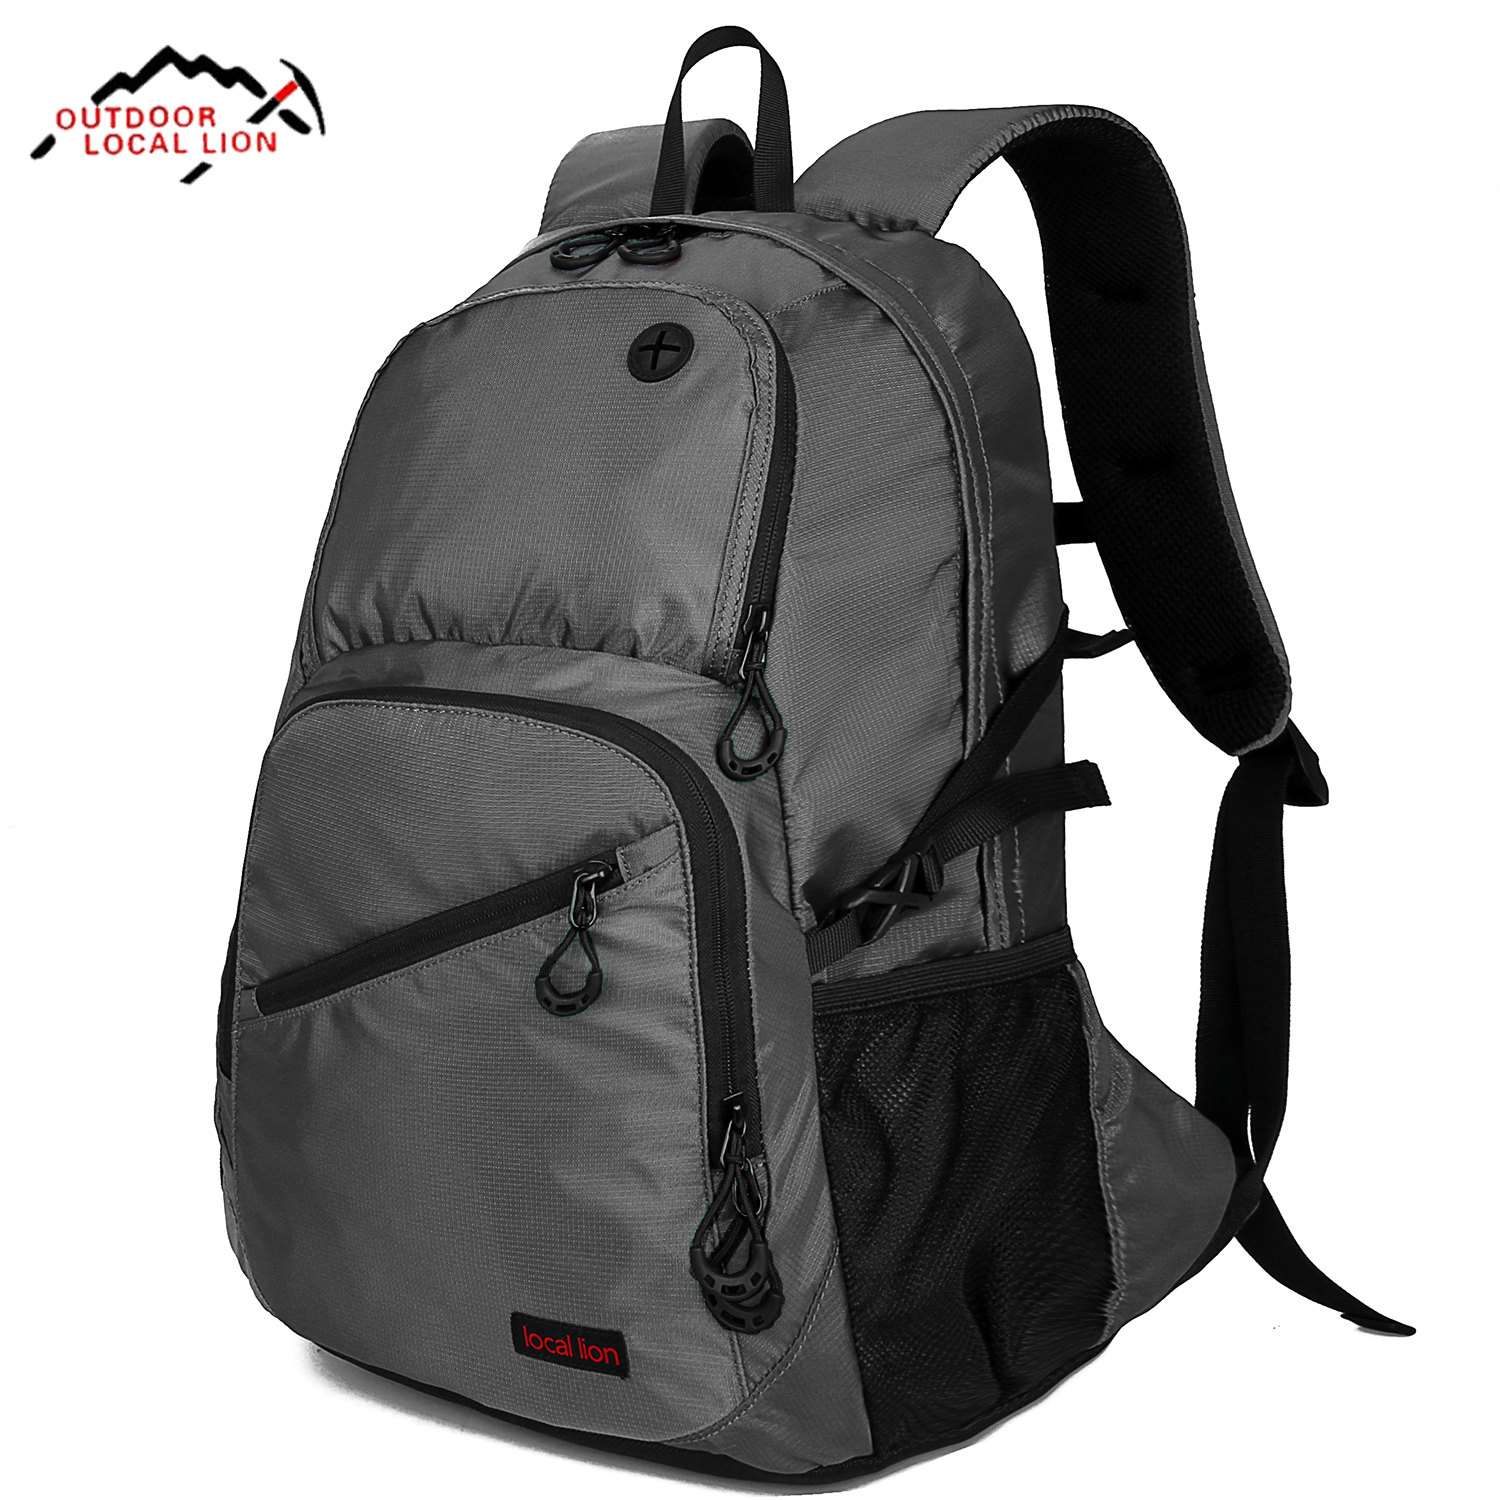 Sport bag travelling backpack outdoor climbing rucksack for Outdoor rucksack